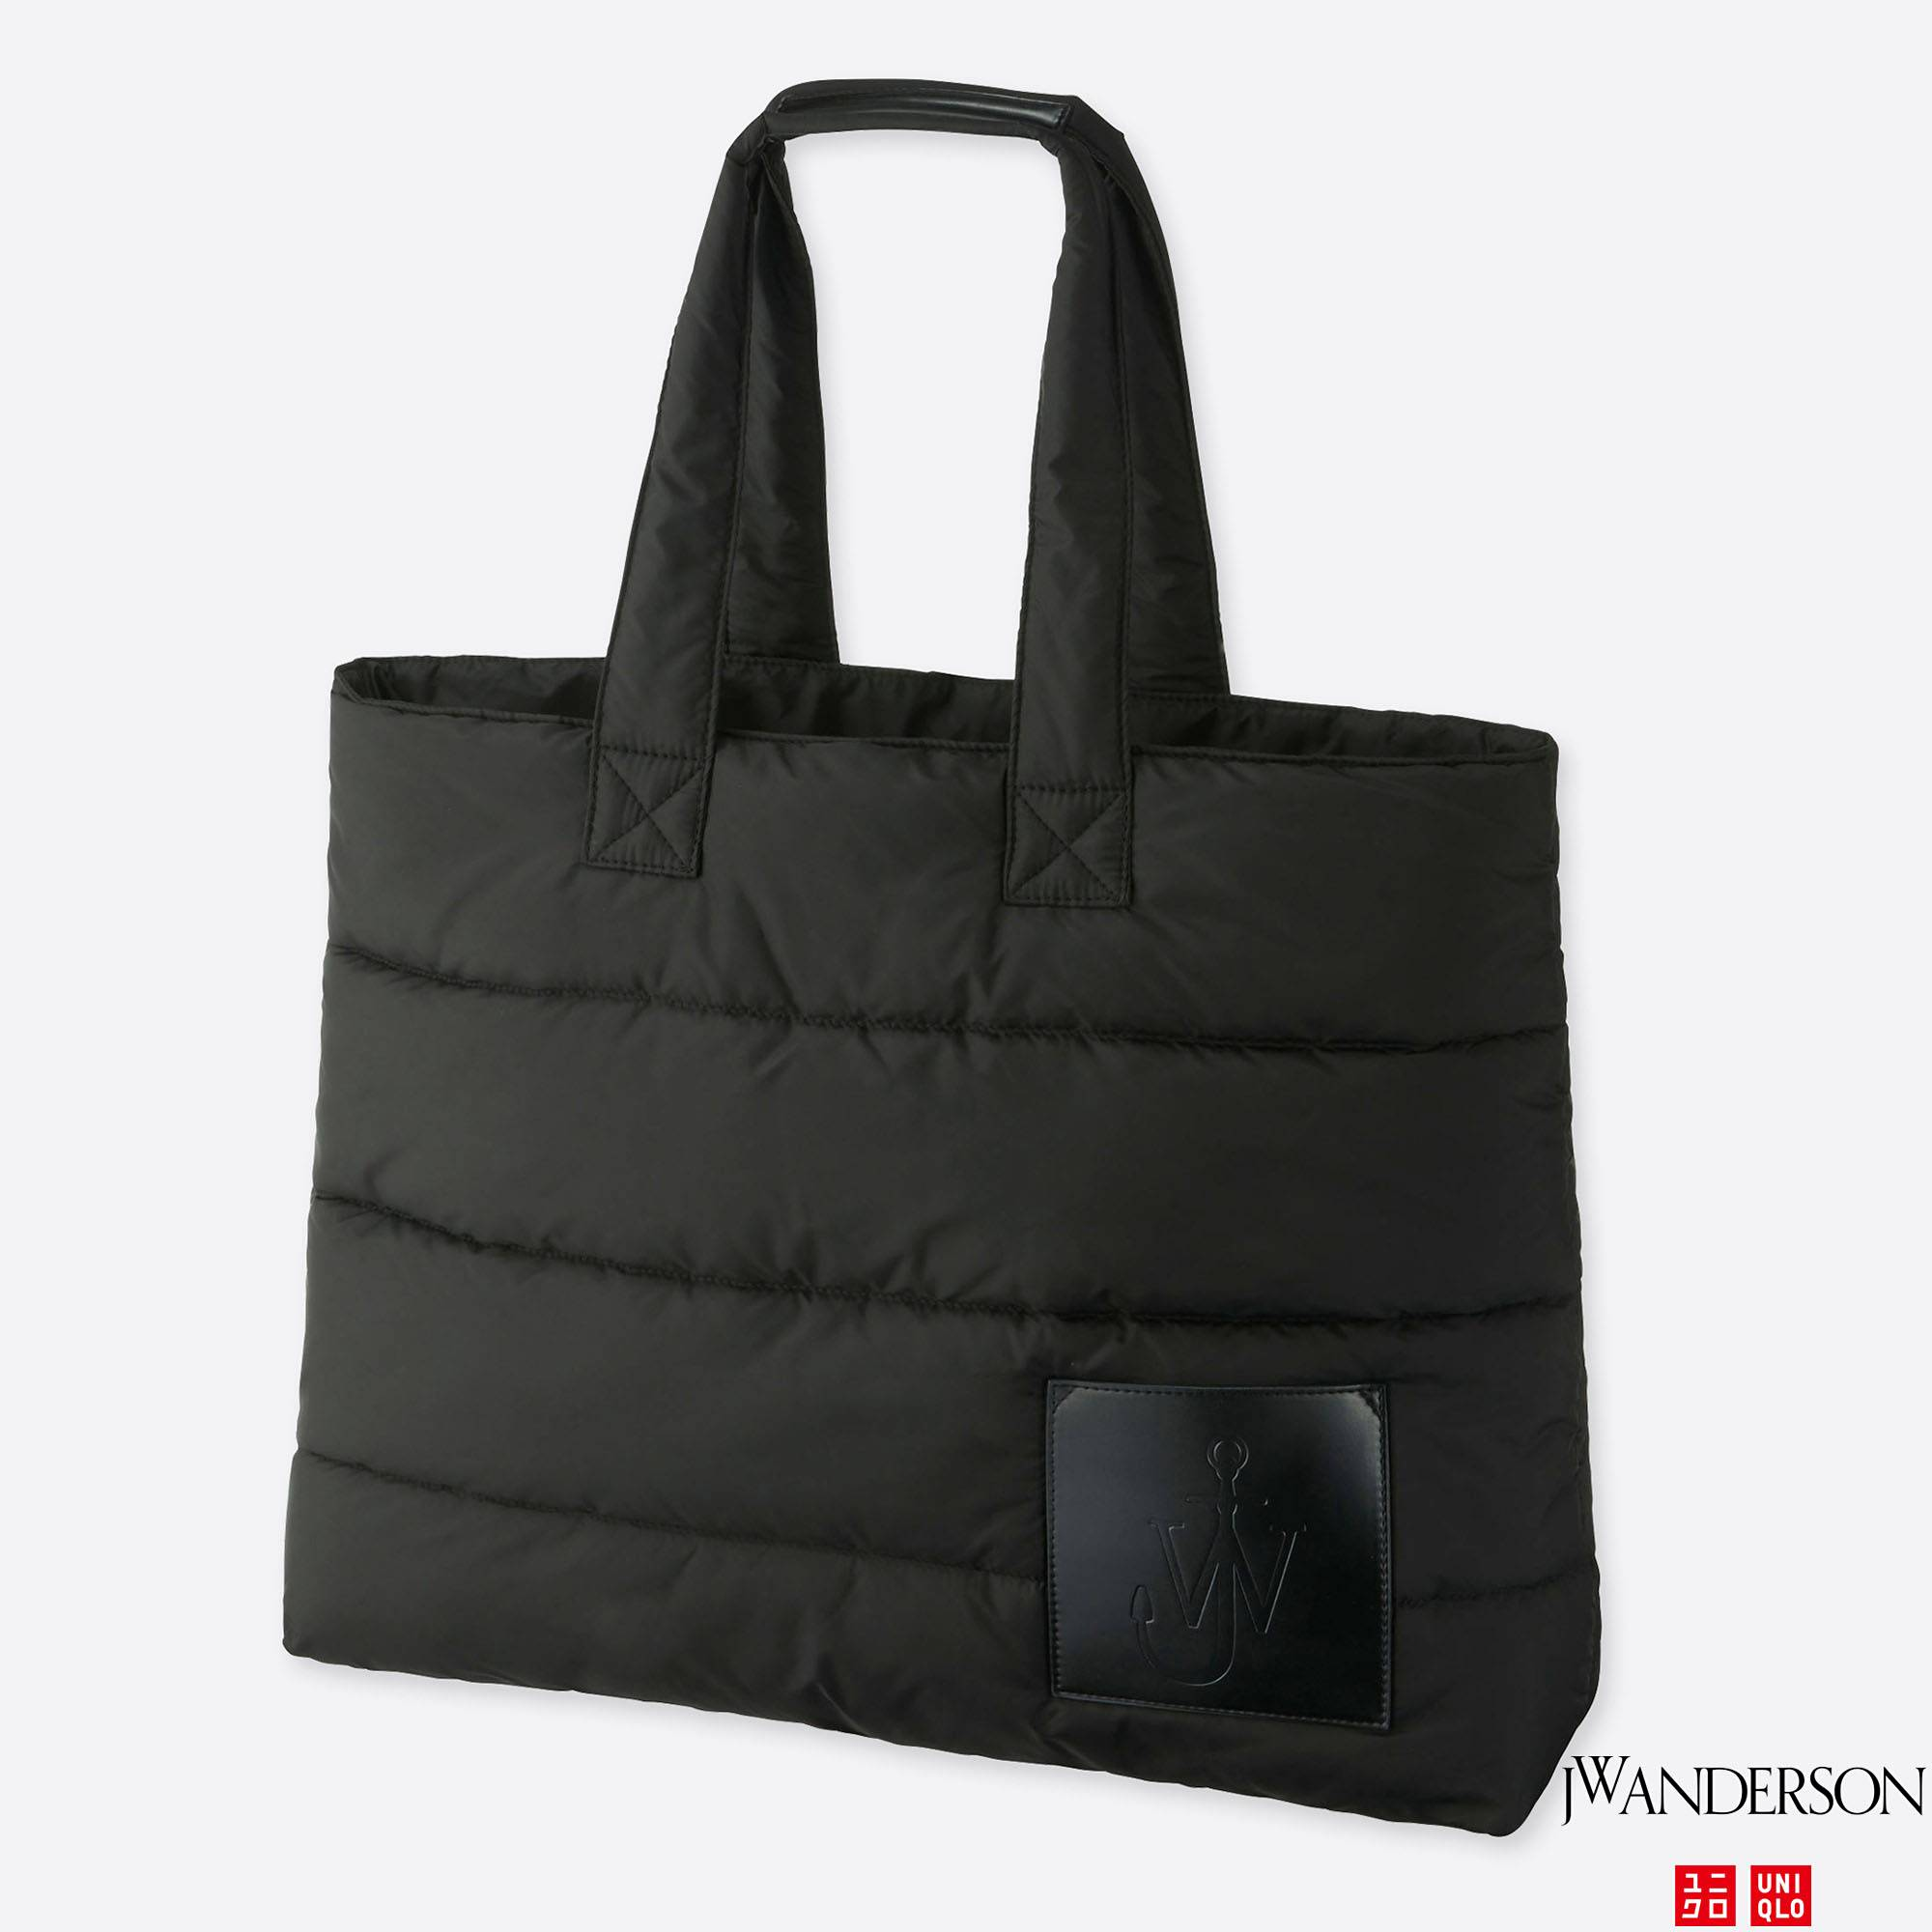 J W Anderson Padded Tote Bag Black Large